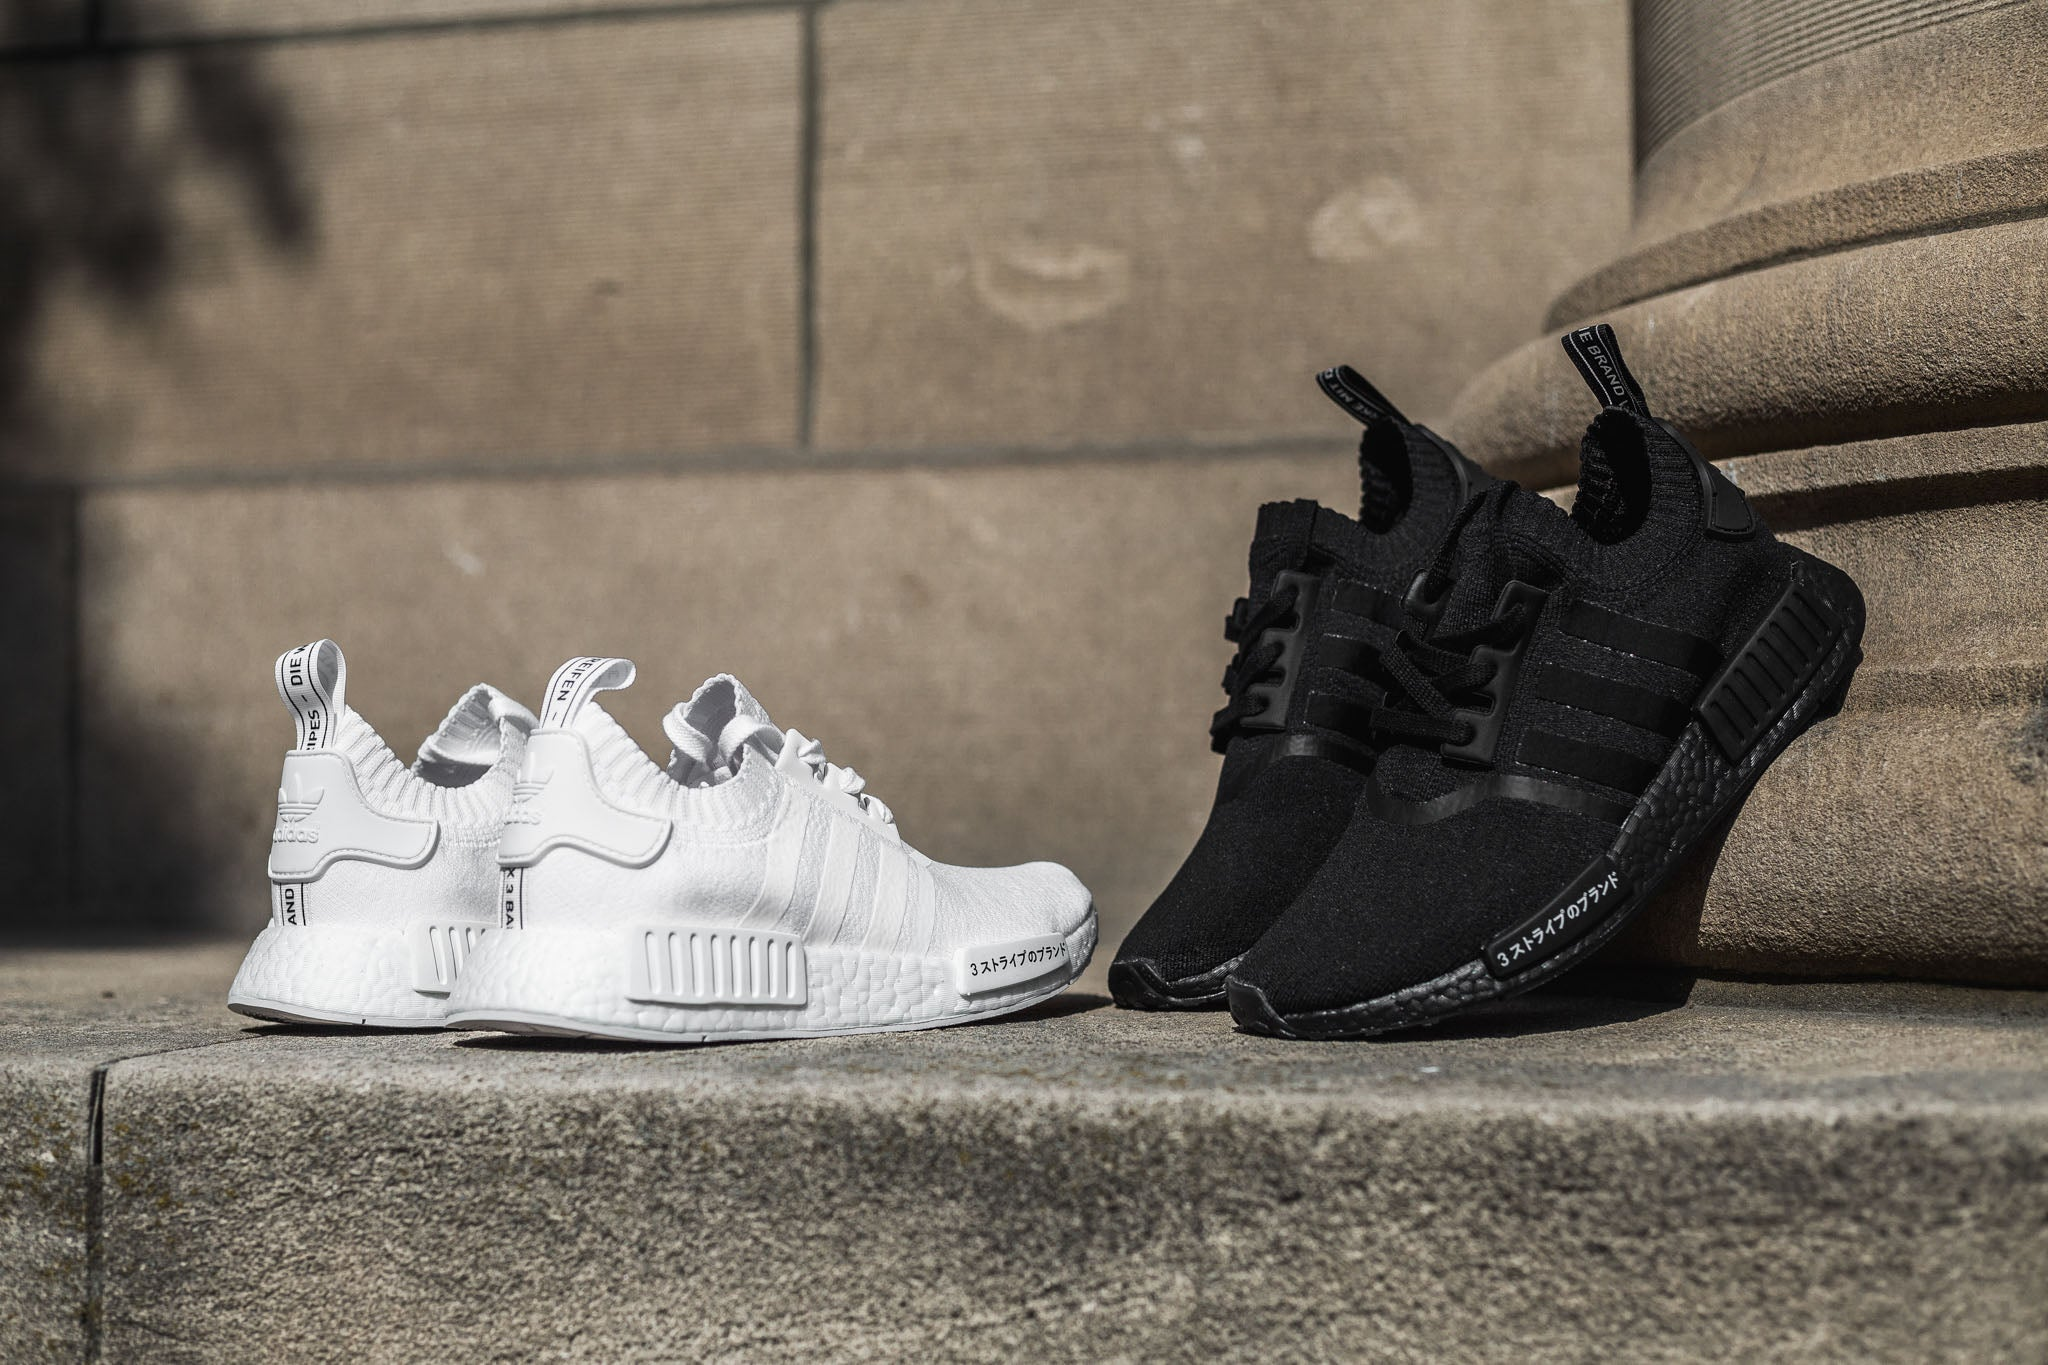 a456004464e2a The adidas NMD R1 PK returns in the